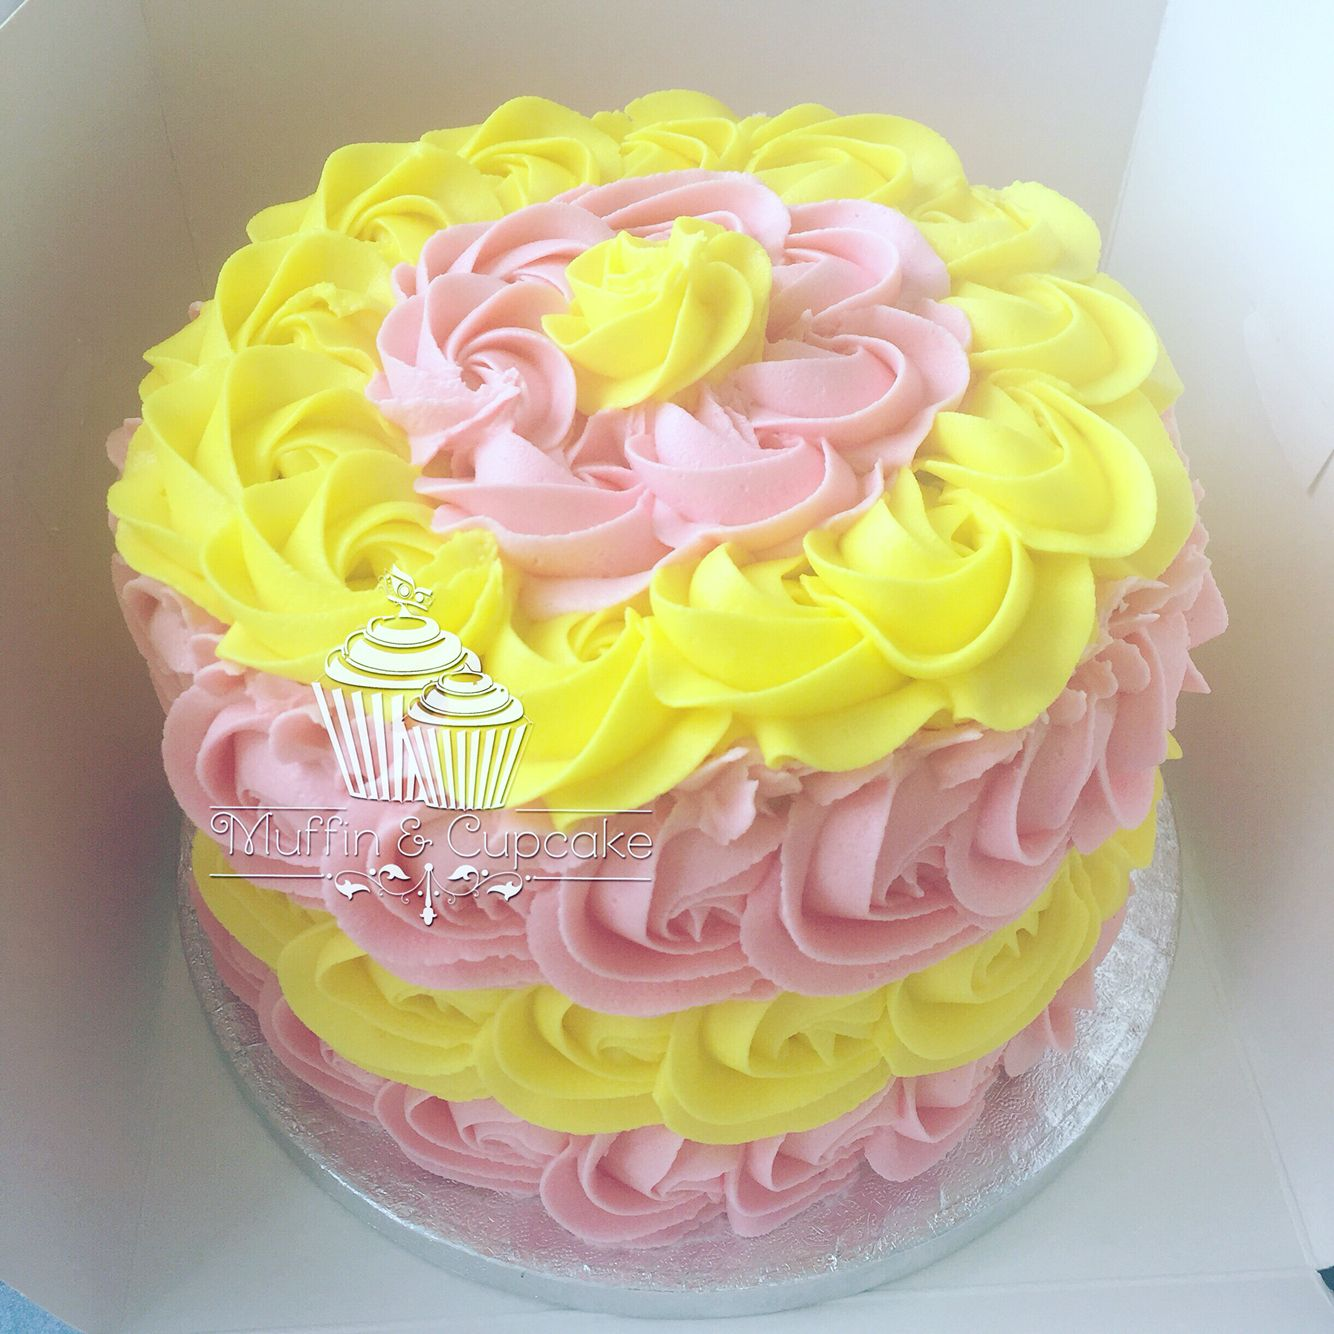 Tremendous Pink And Yellow Cake Smash Cake With Images Yellow Birthday Cakes Personalised Birthday Cards Veneteletsinfo